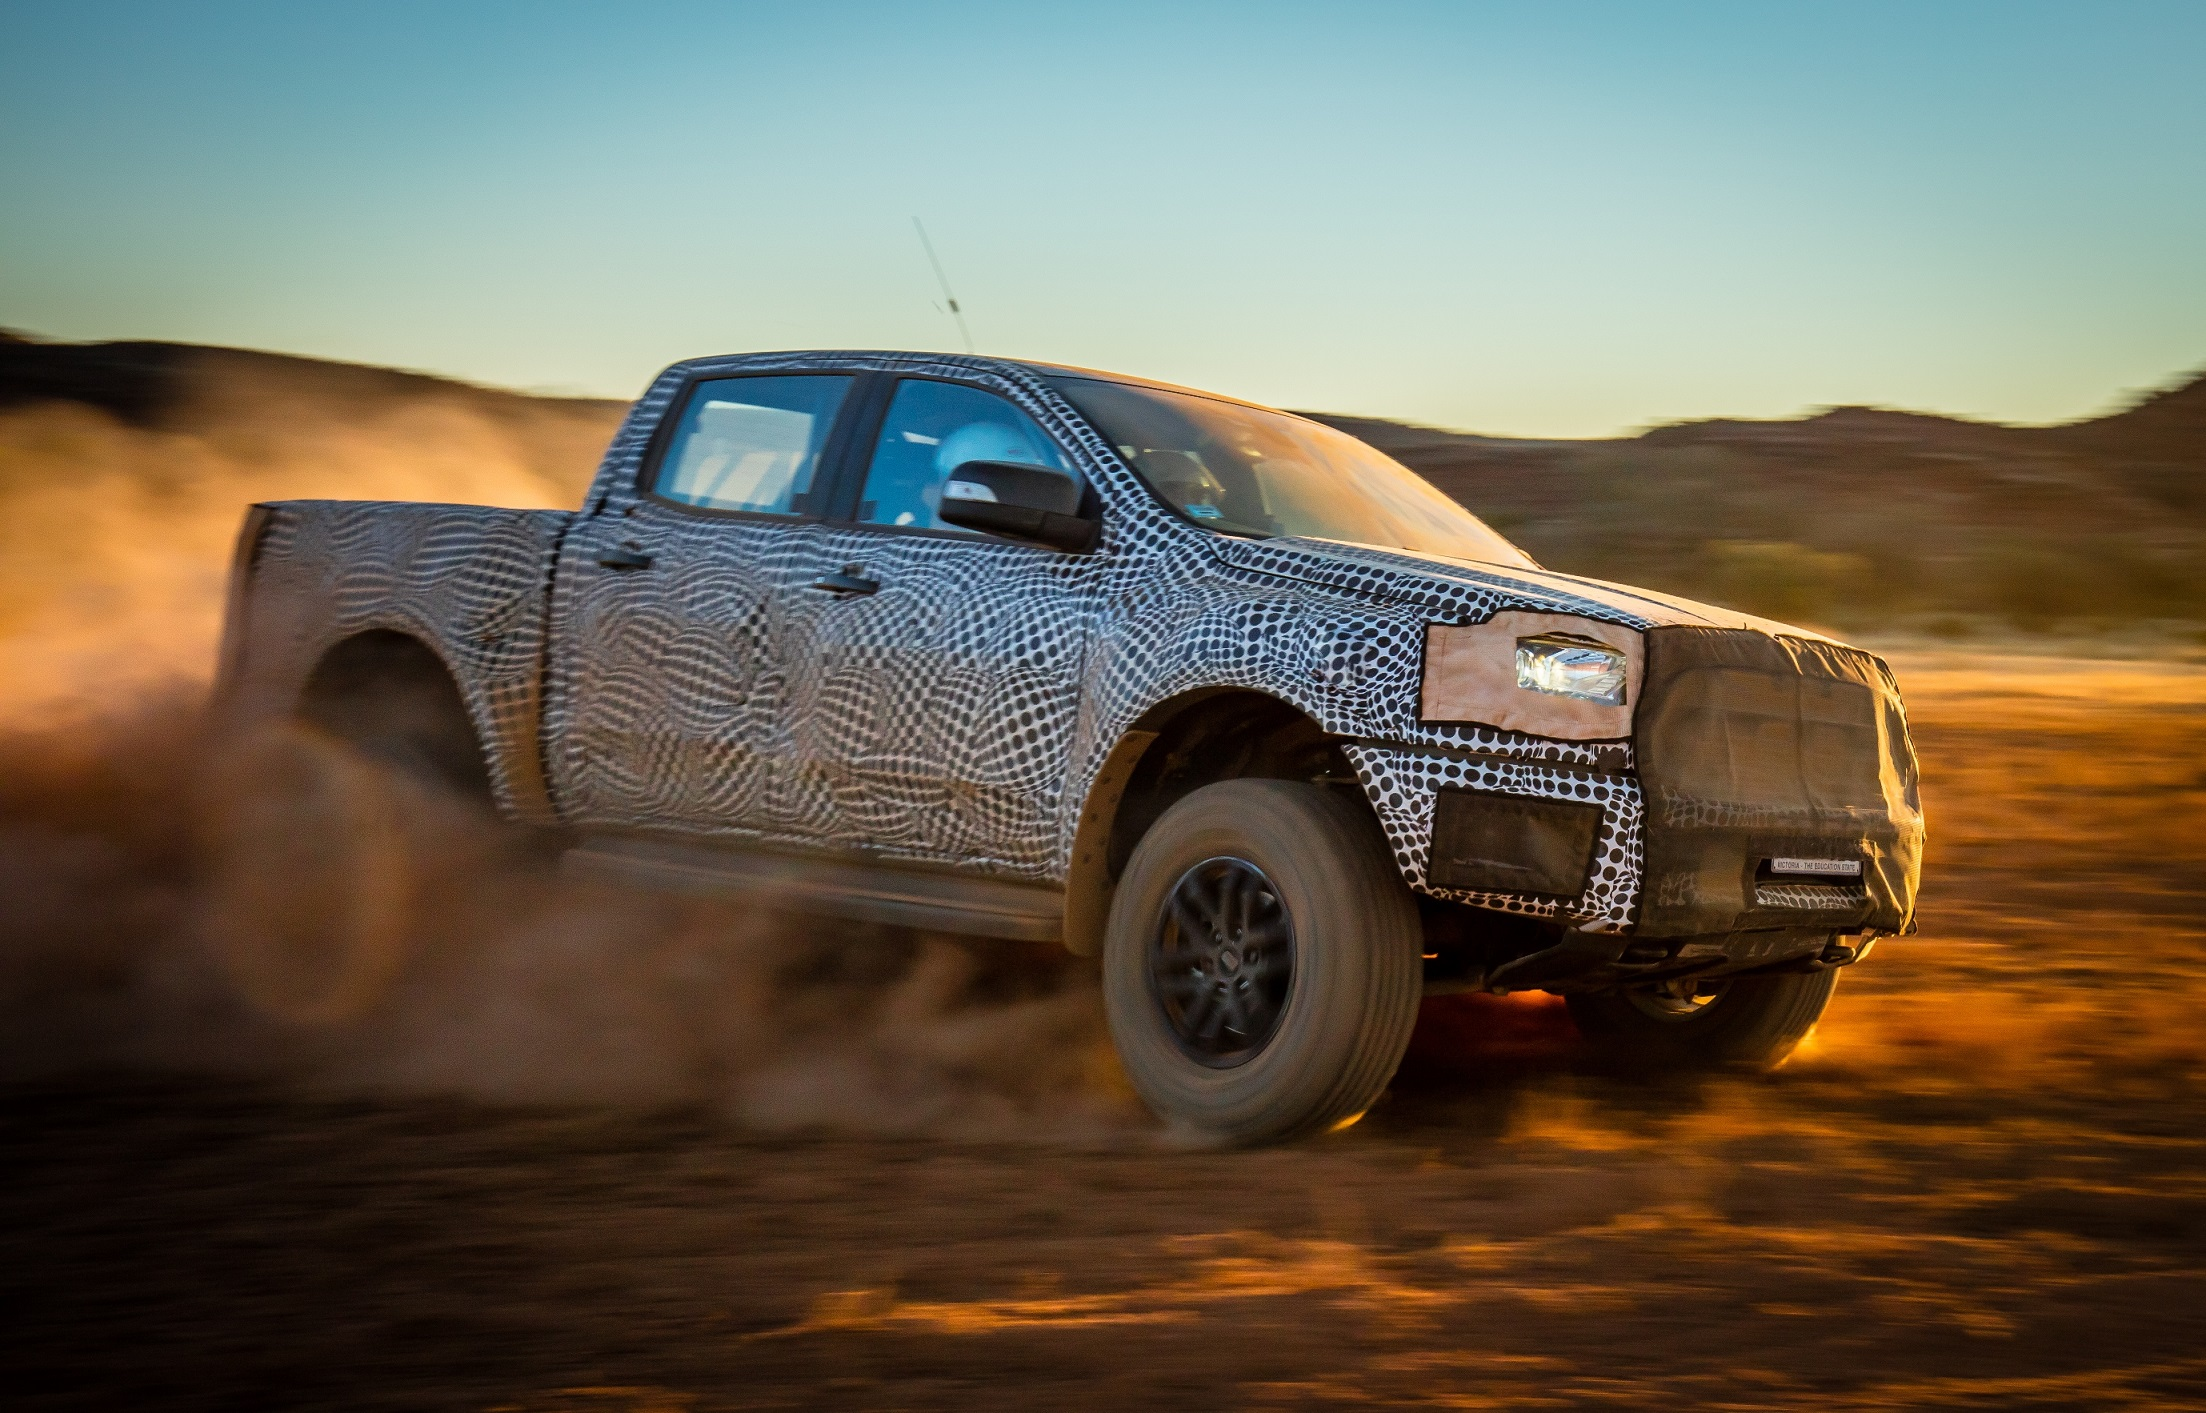 ford, ford ranger, ford ranger raptor, ford motor company, f-150 raptor, ford gt, ford mustang shelby, ford rs, ford st, pickup tuck